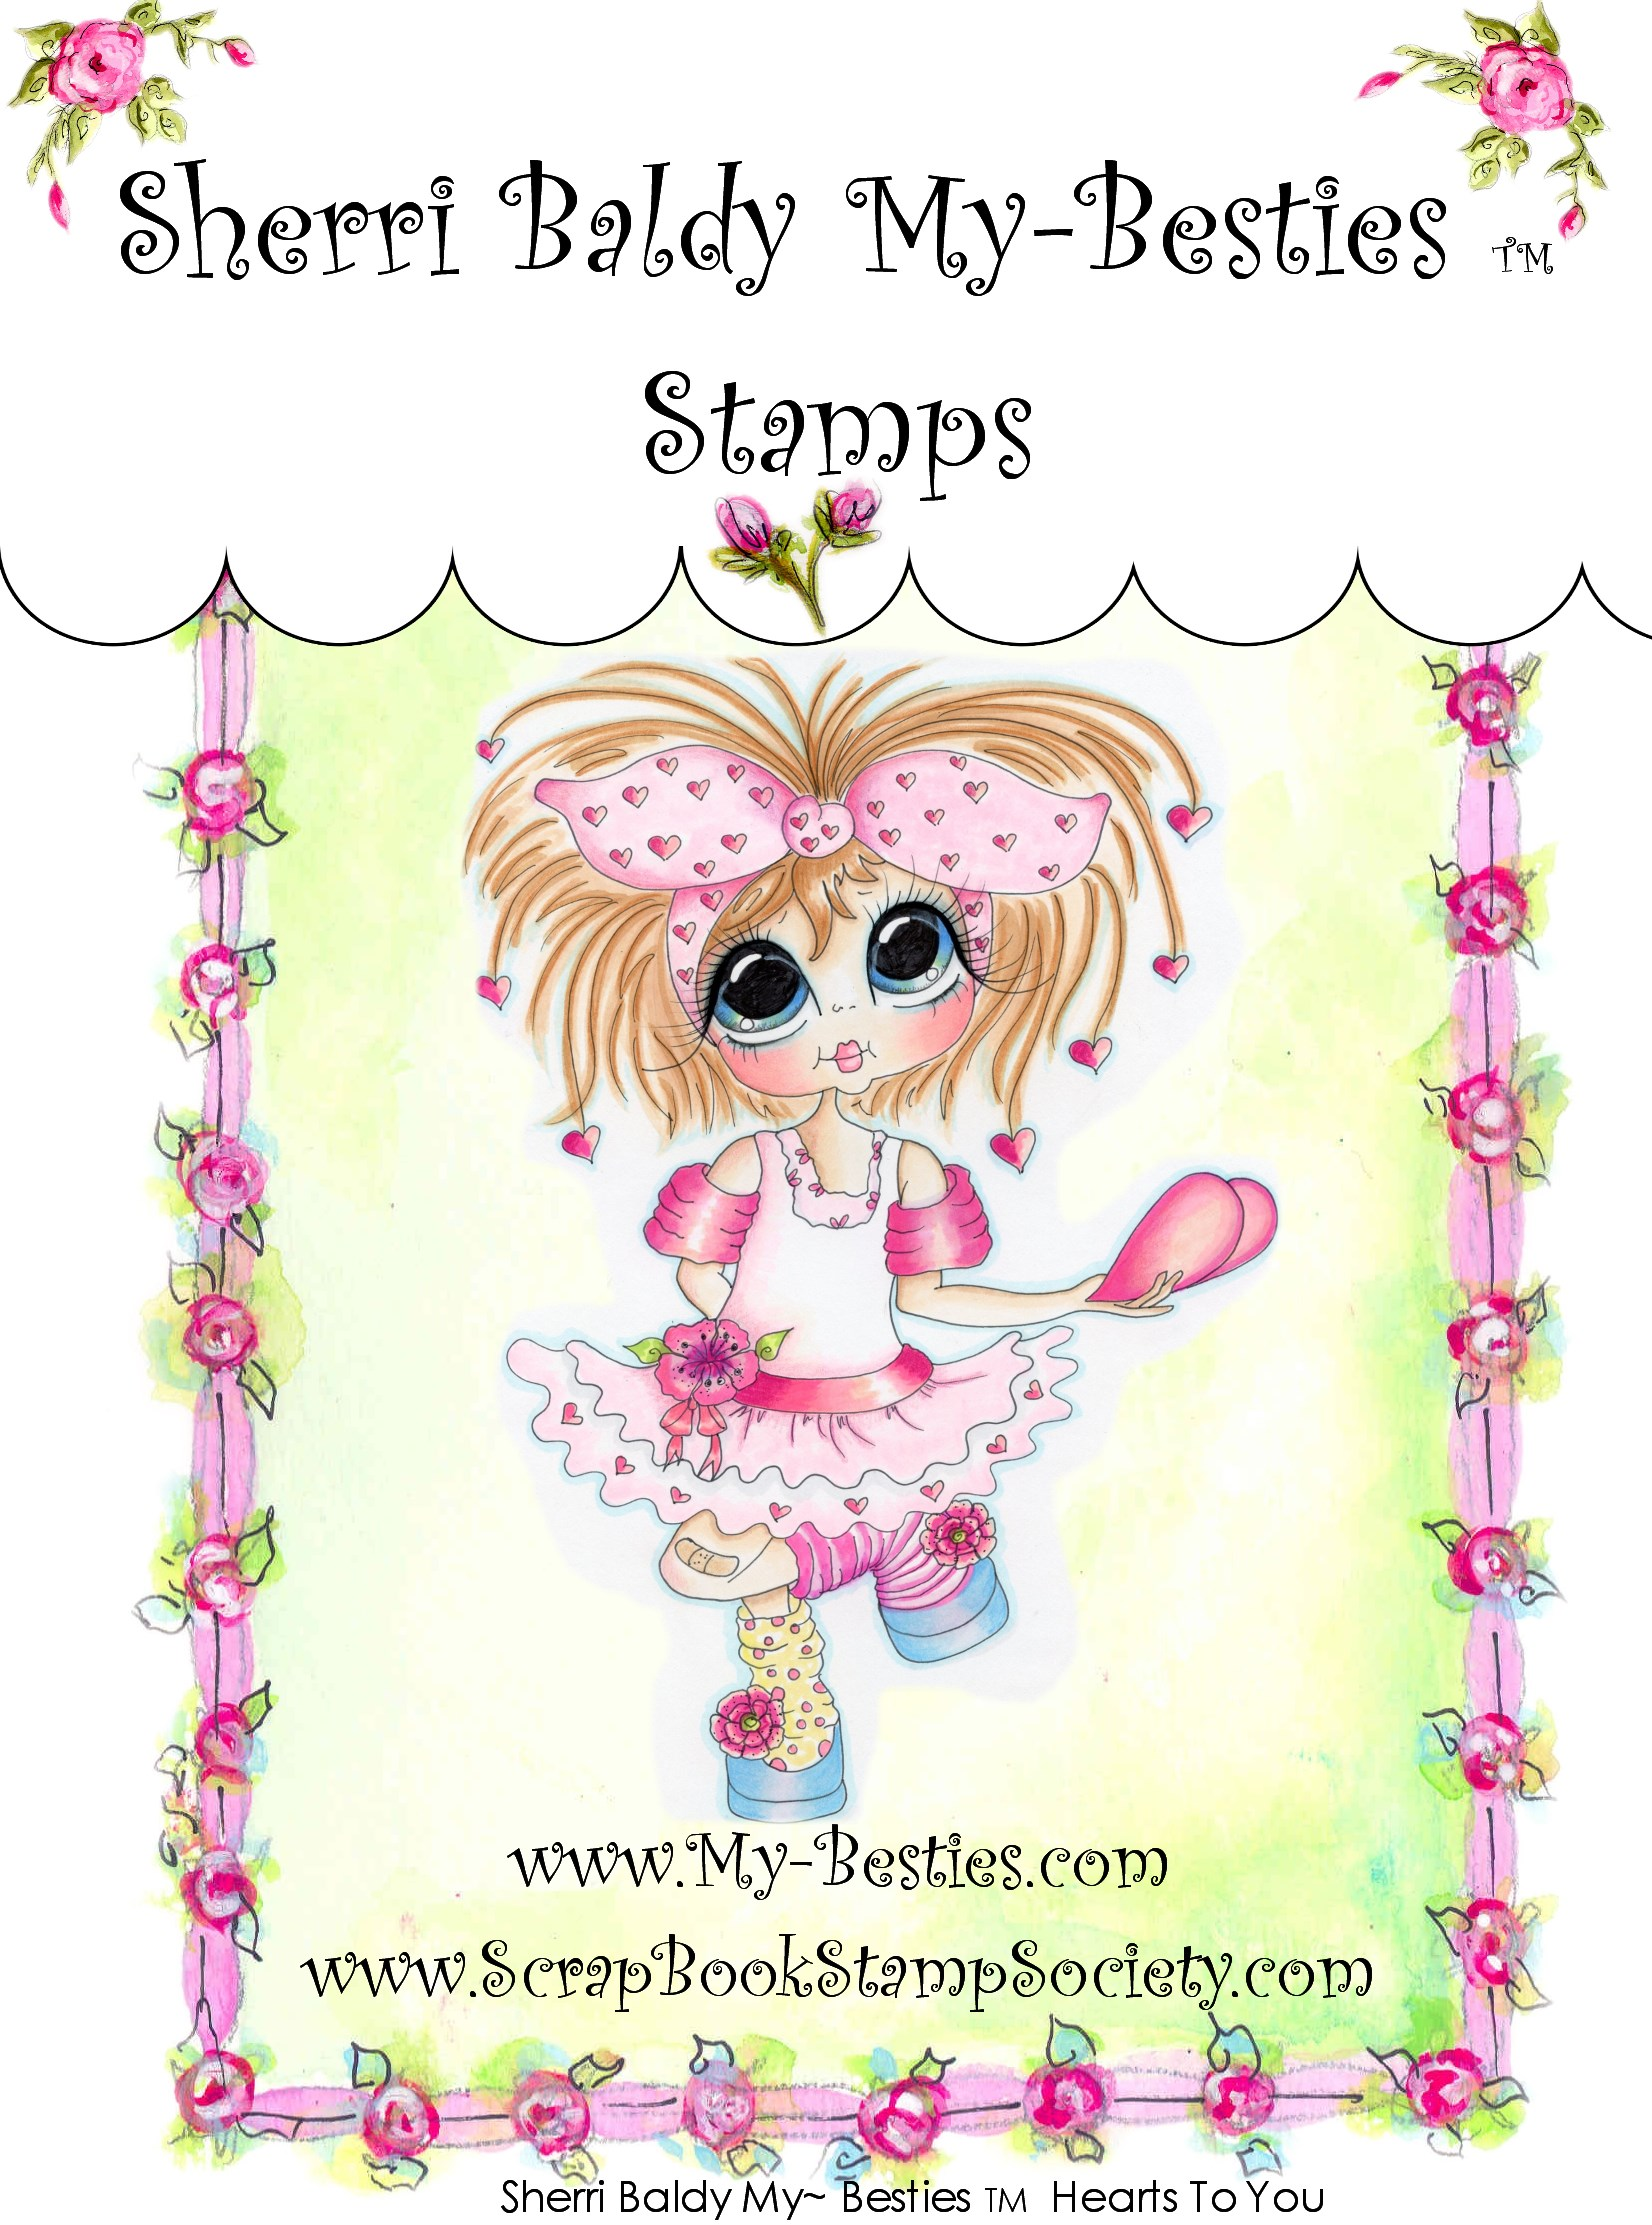 Clear Rubber Stamp Hearts to you-Sherri Baldy, my besties, digi stamps, rubber stamps, big eyed, dolls, Messy Bessy,